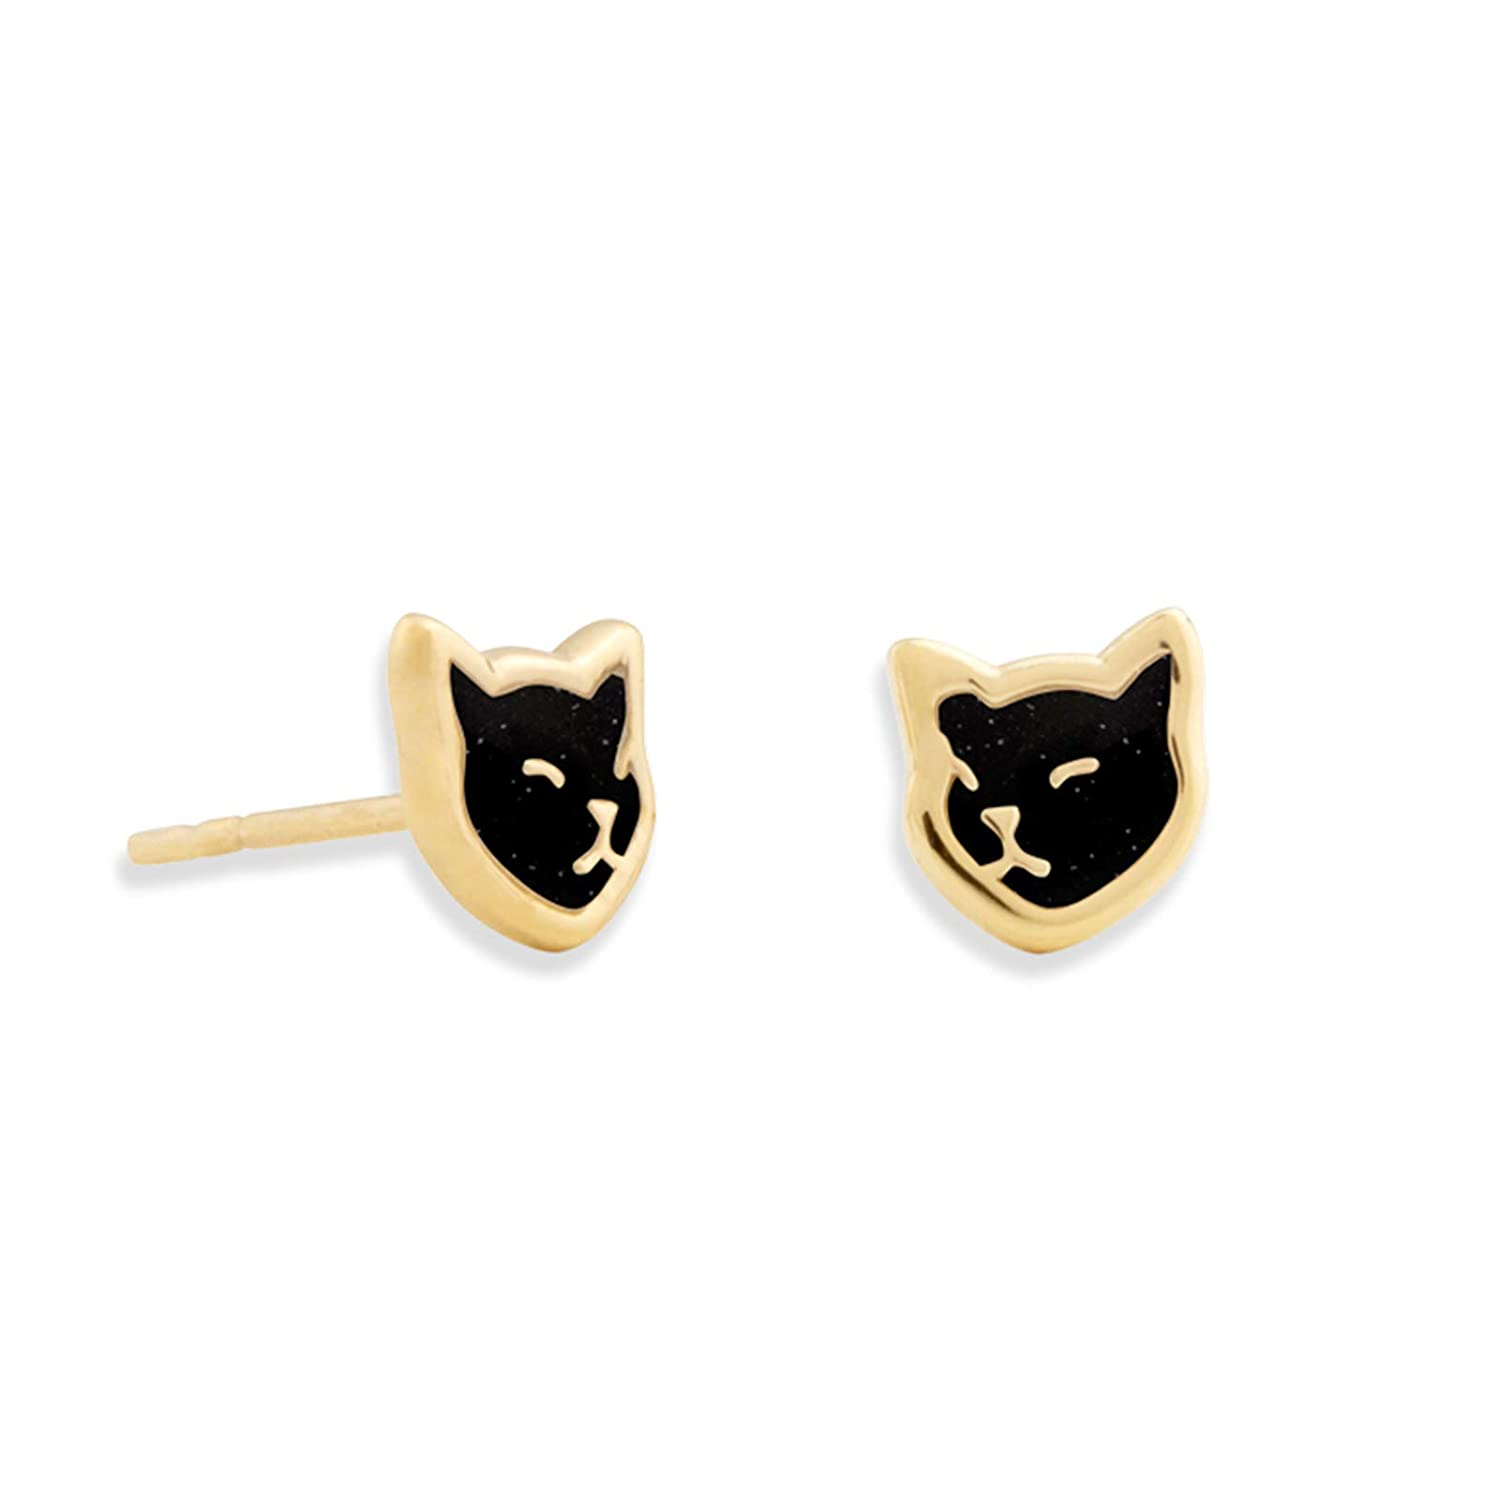 Gold Plated Silver Cat Studs Small Kitten Earrings Polymer Clay Handmade Jewelry NanoStyle Jewelry EAC15G-black-cat-stud-earrings